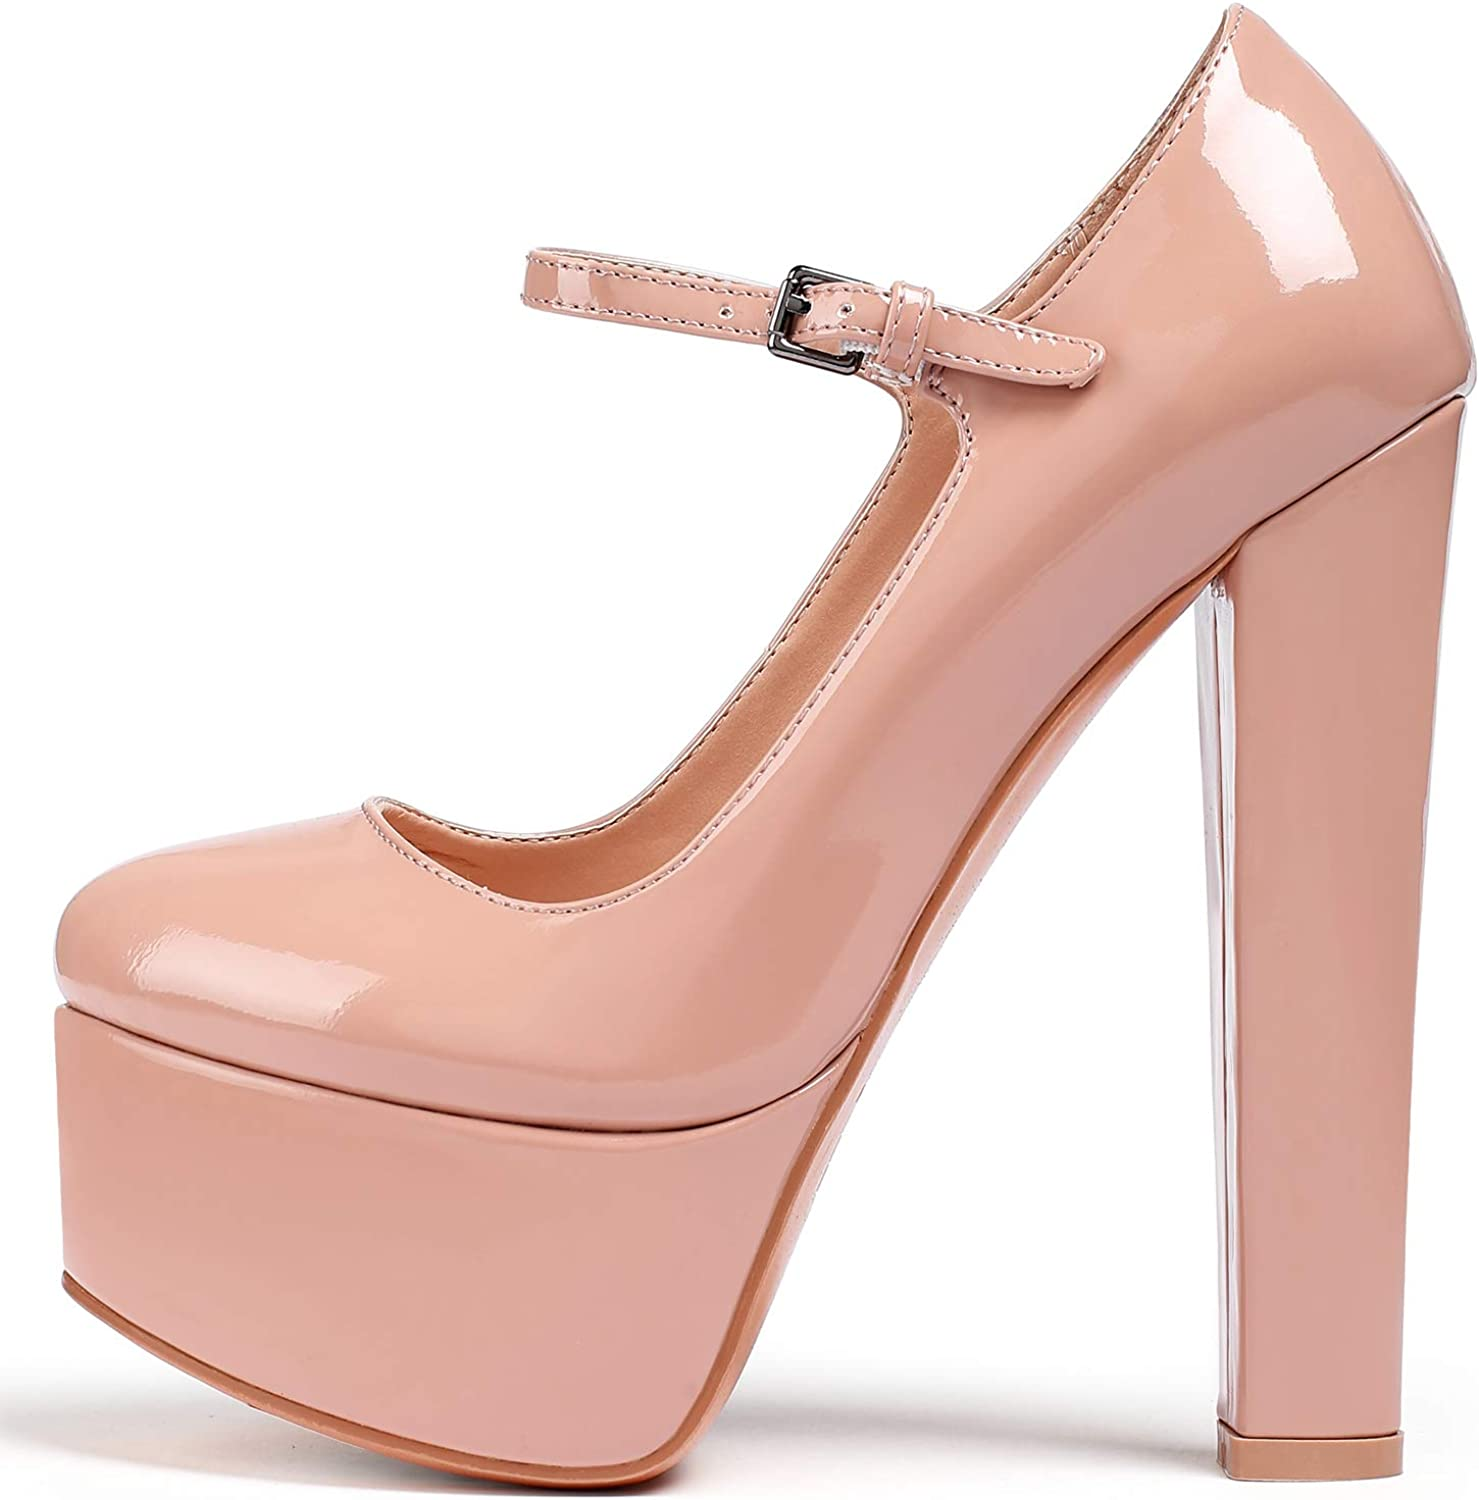 New Women Patent Leather Pointy Toe Wedge Heel Party Dress Pump Shoes Plus Size